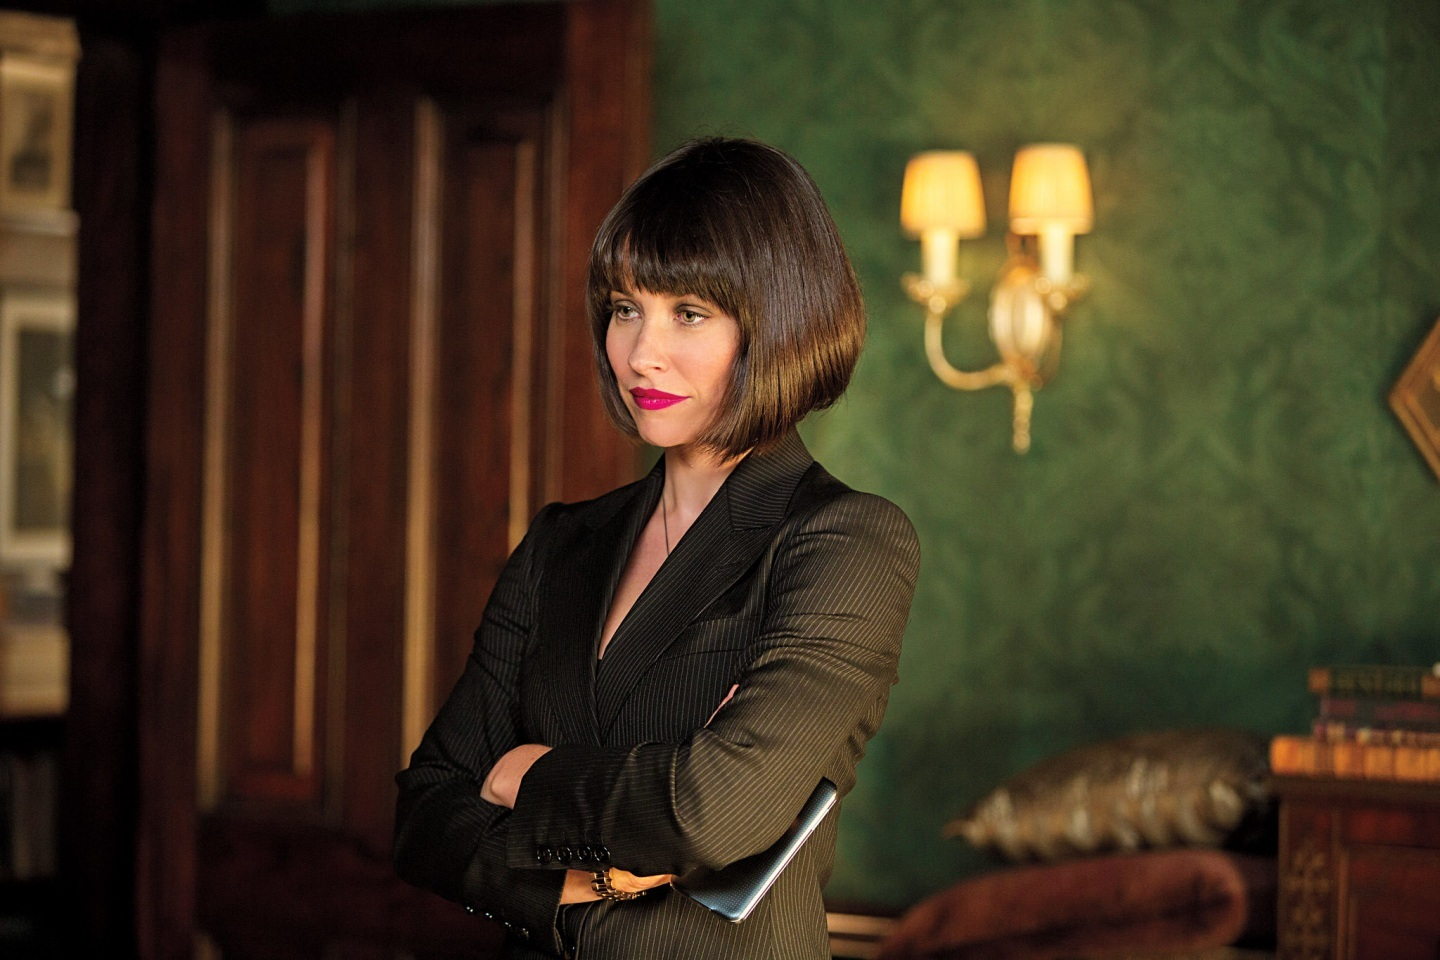 Ant Man Beginning And An End Evangeline Lilly As Hope Van Dyne Body